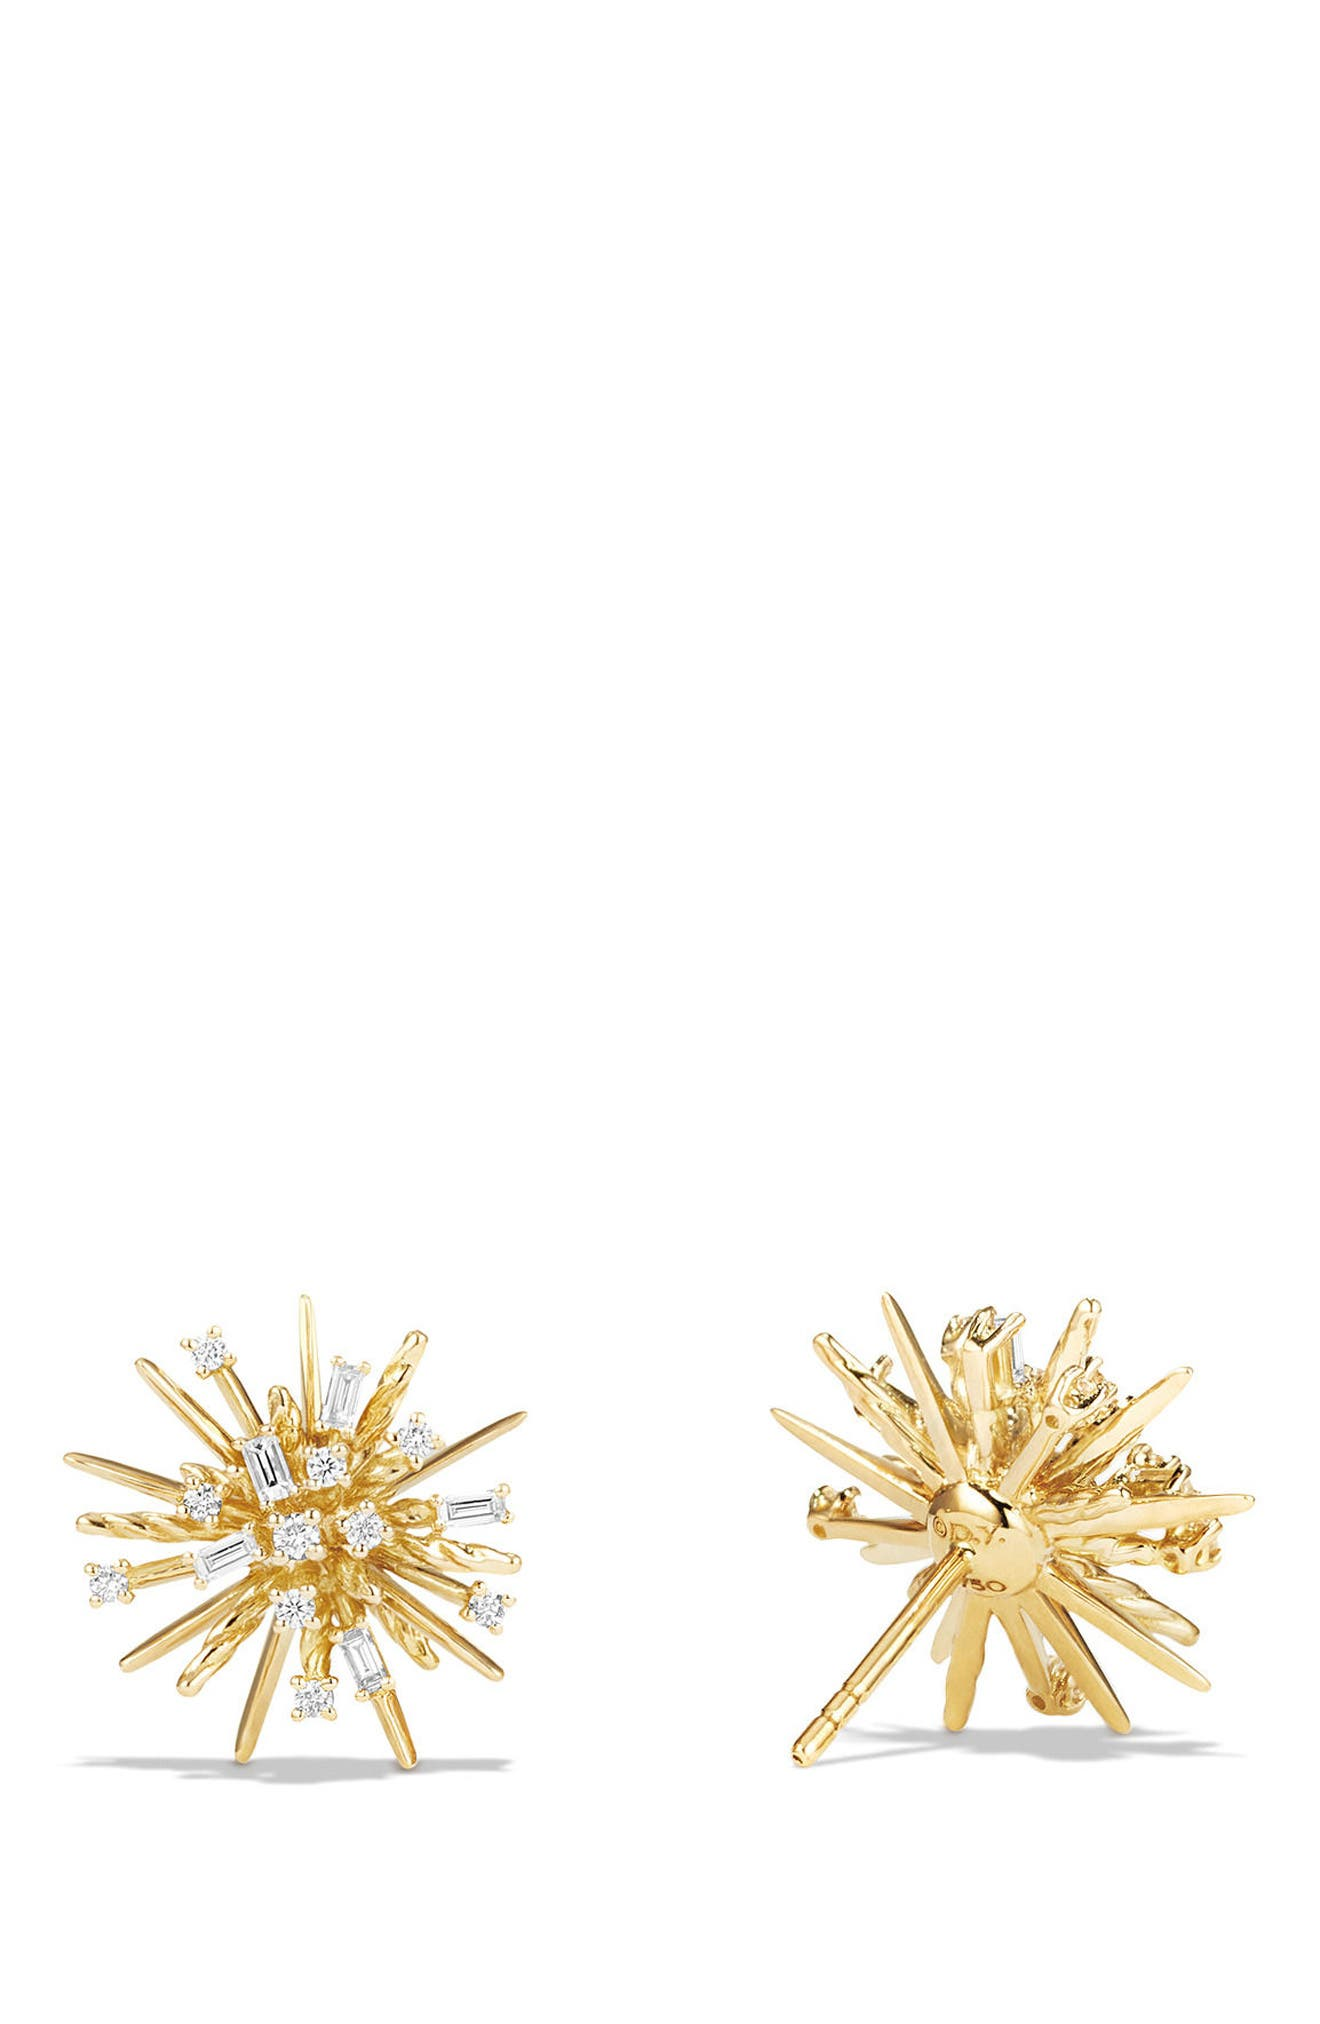 Supernova Stud Earrings with Diamonds in 18K Gold,                             Alternate thumbnail 2, color,                             Yellow Gold